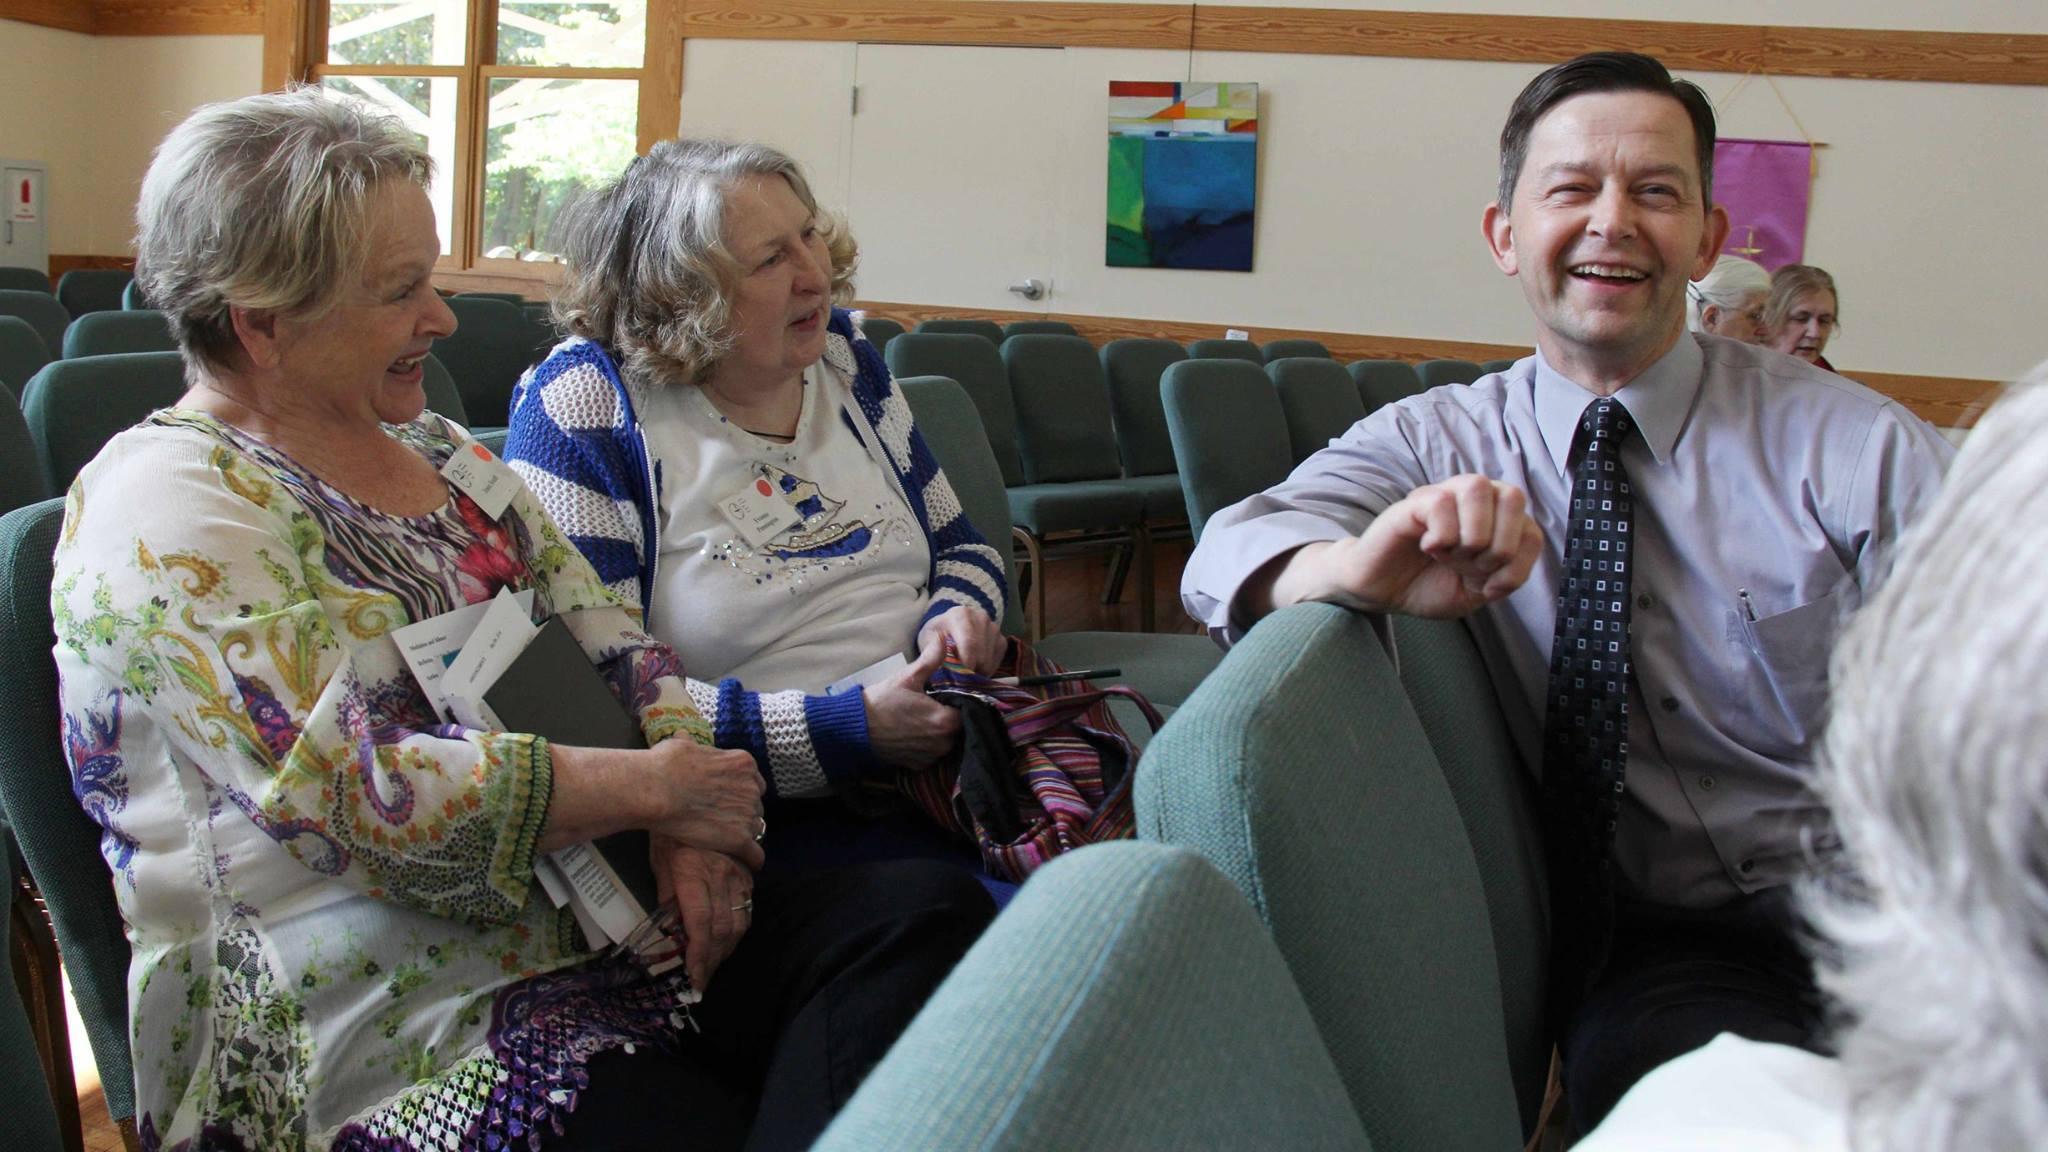 Dave Dunn converses with congregants